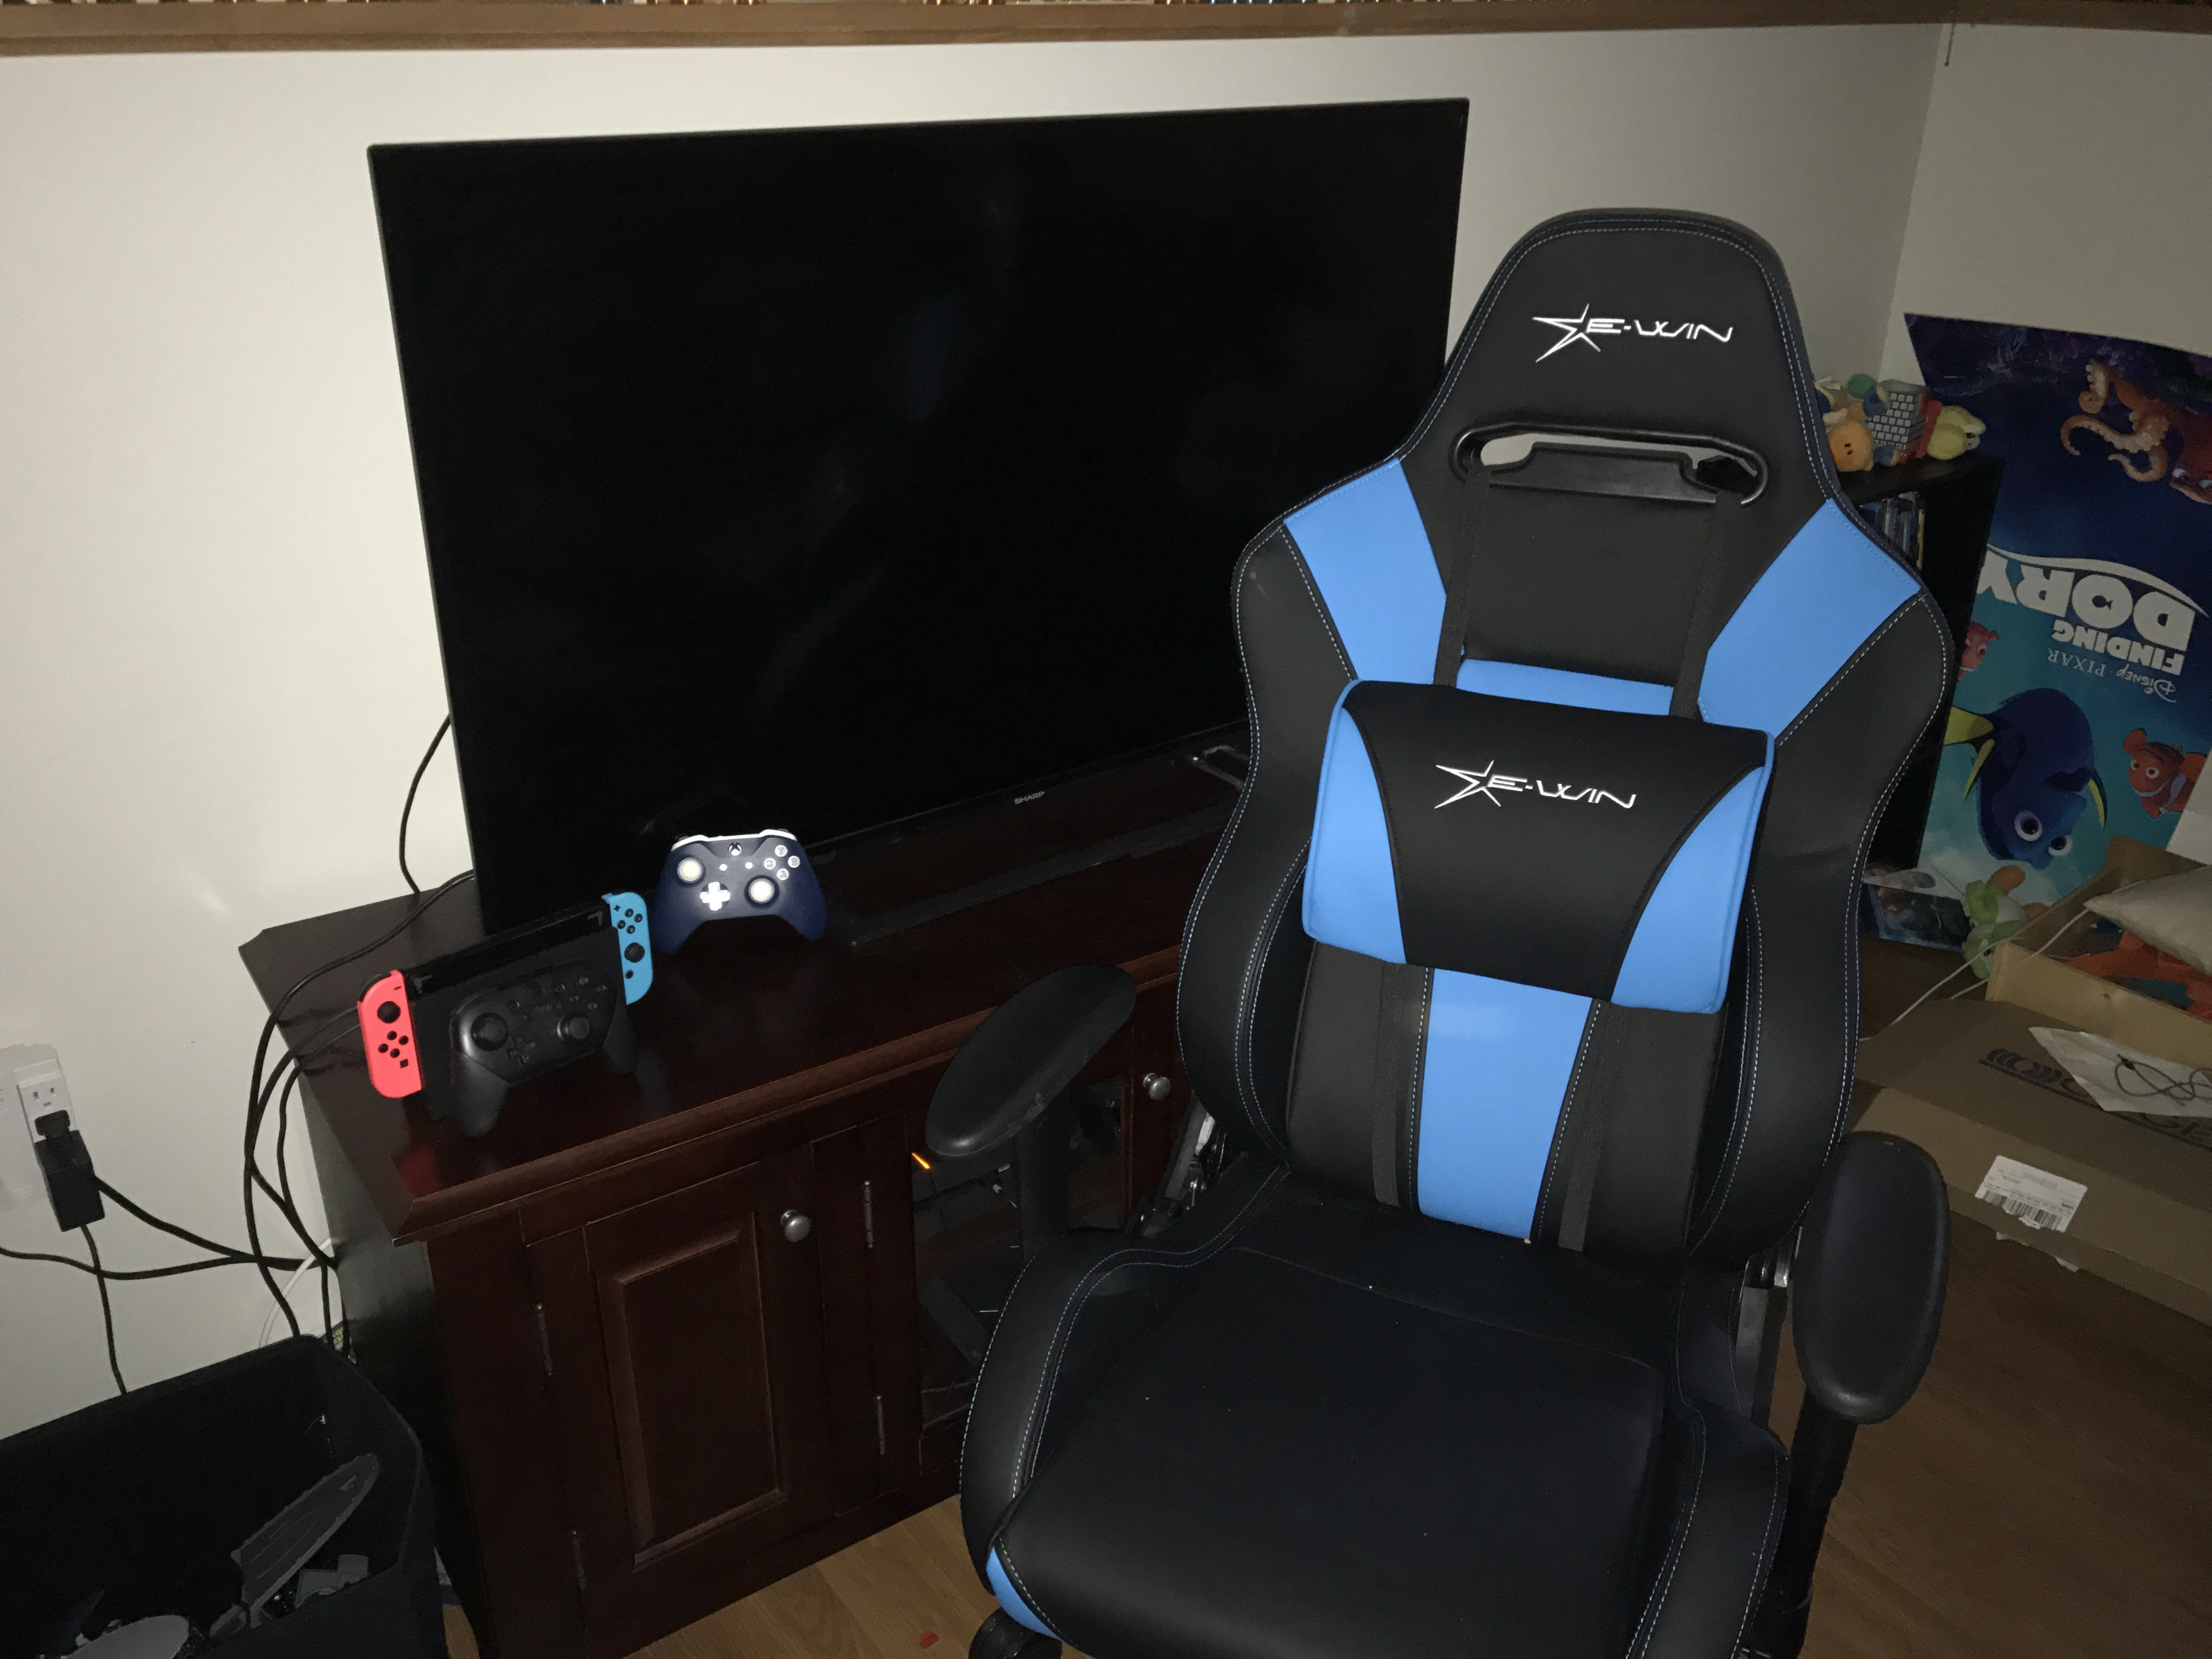 forza horizon 2 gaming chair perkins caning supplies hero series ewin racing review gamesreviews com after using the for about 3 weeks exclusively i e no more sitting in my recliner to play games a lot of back pain is